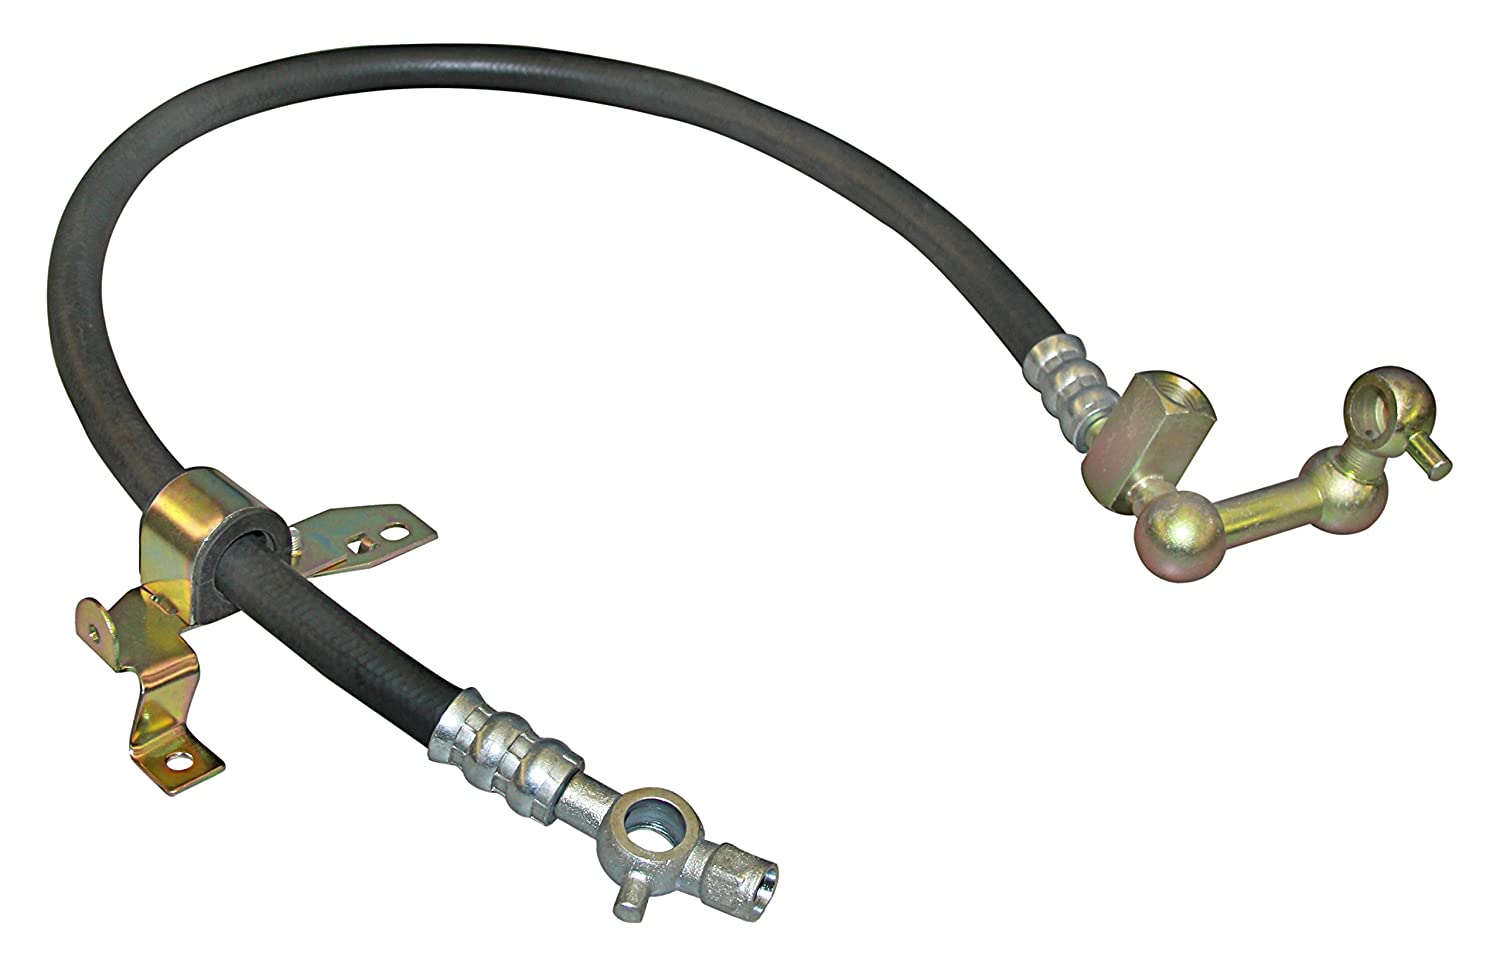 Pump to Rack w//o Switches, Please Reuse 49720-7J400 MTC 1010695 MTC 1010695//49720-7J400 Power Steering Pressure Hose